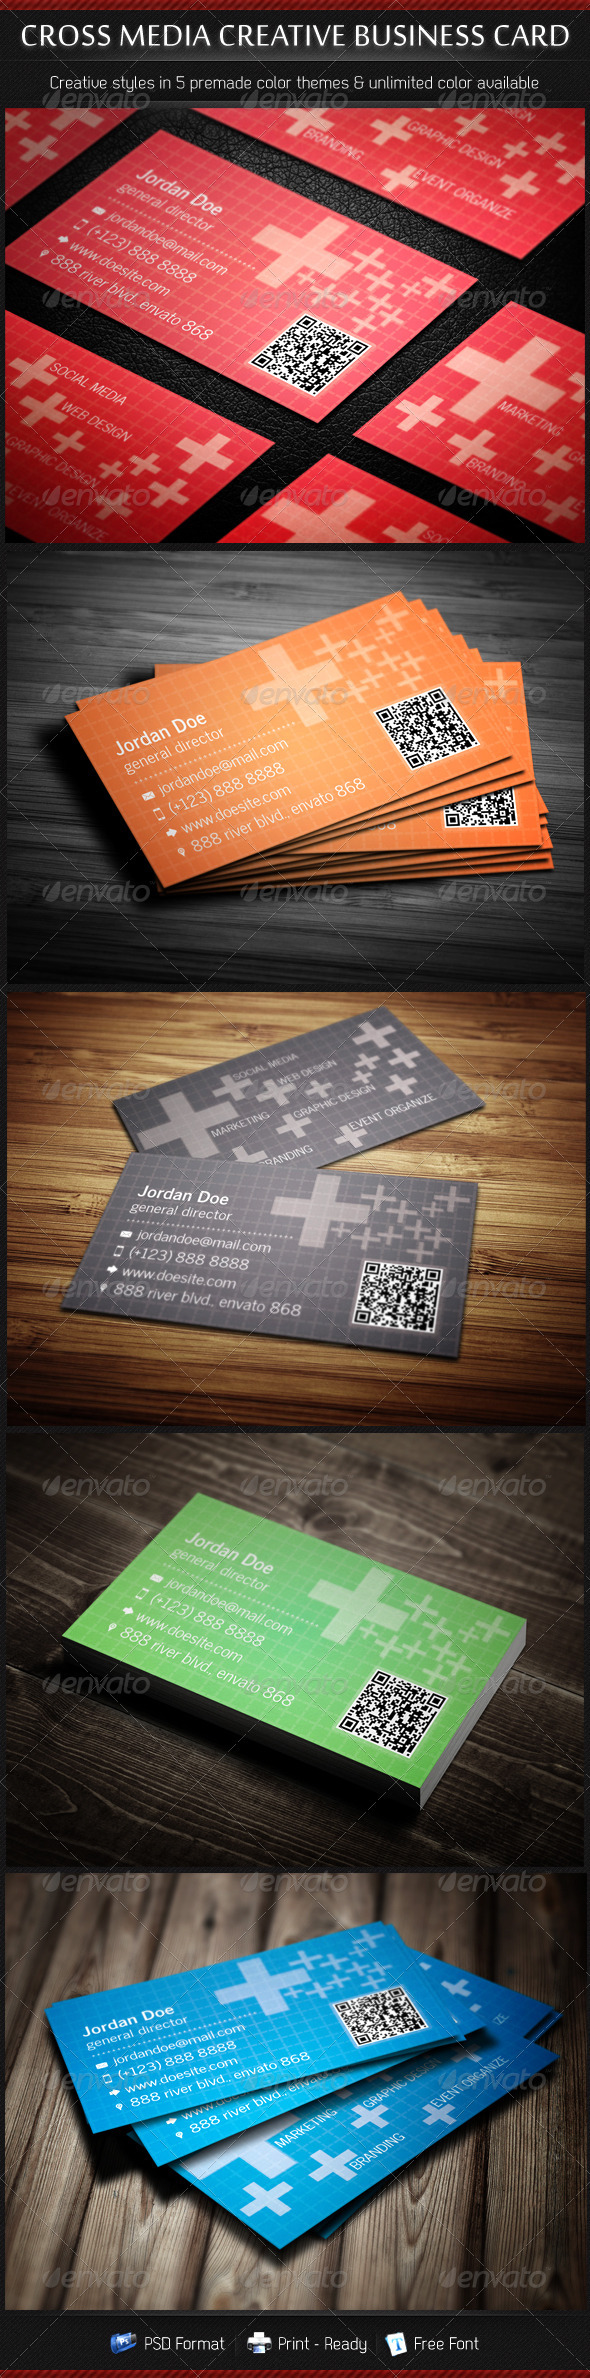 Cross Media Creative Business Cards 5 in 1 - Creative Business Cards